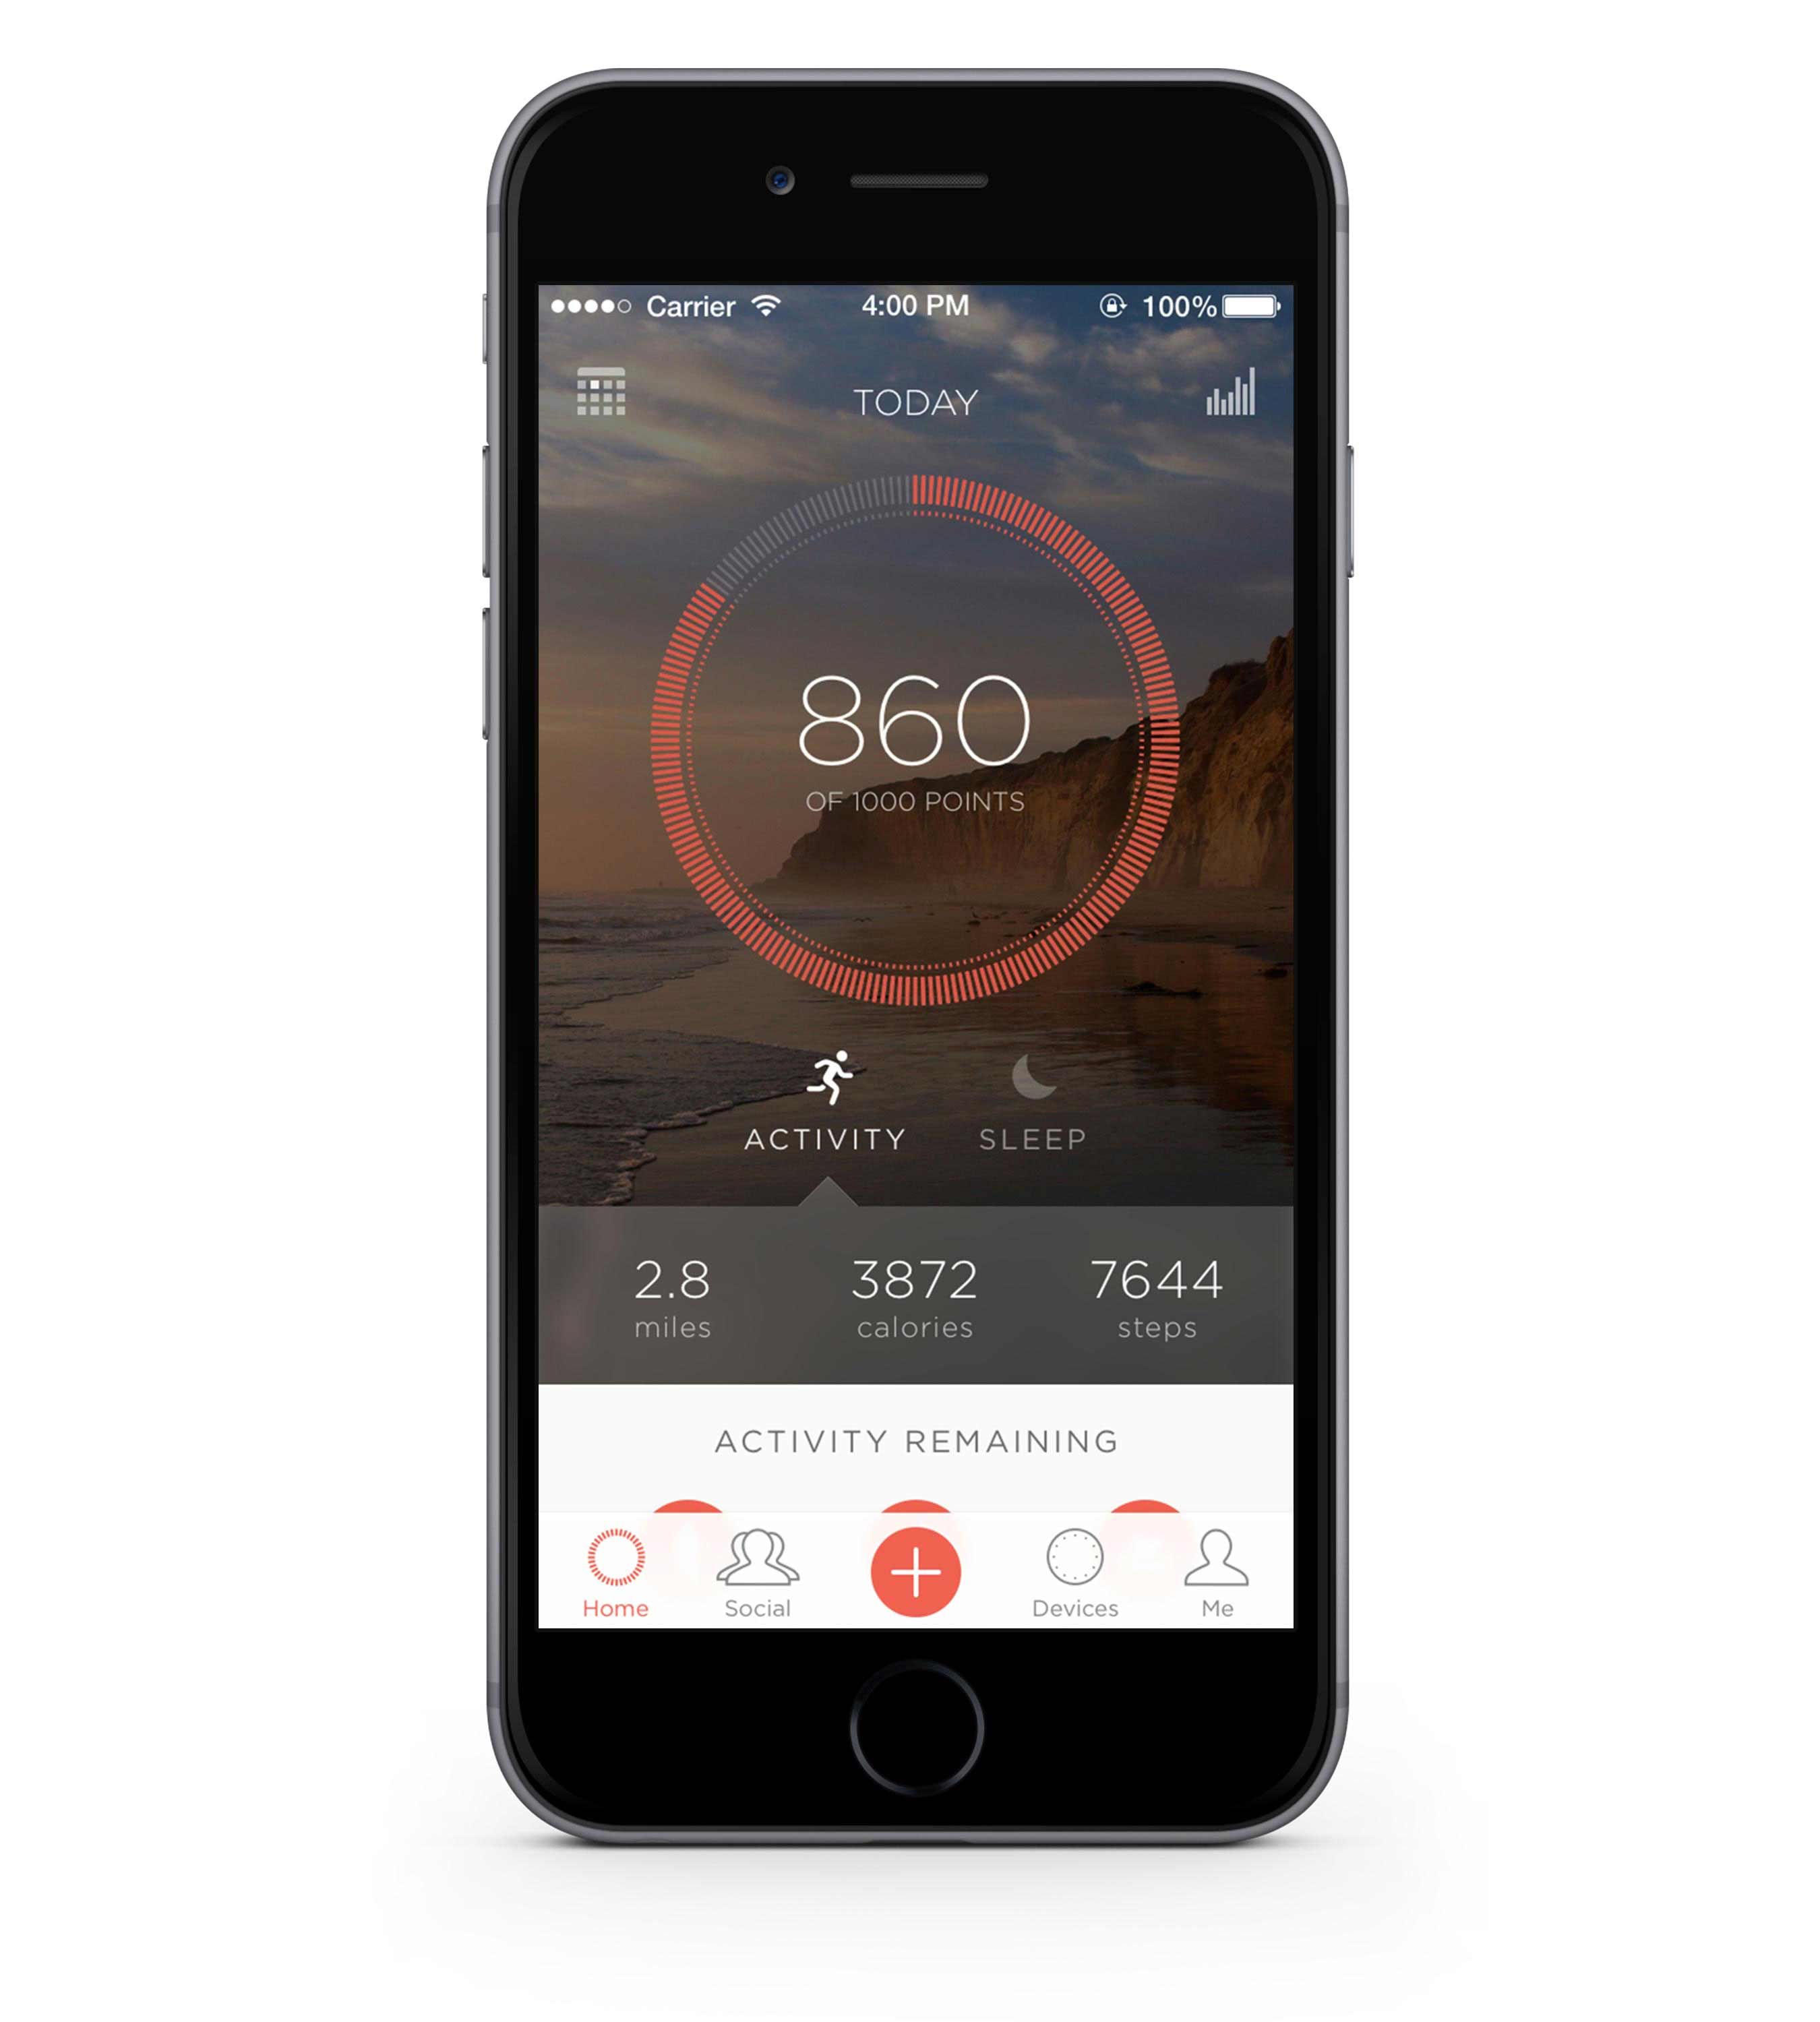 Fitness Apps: Find Apple & Android Health Apps - Misfit